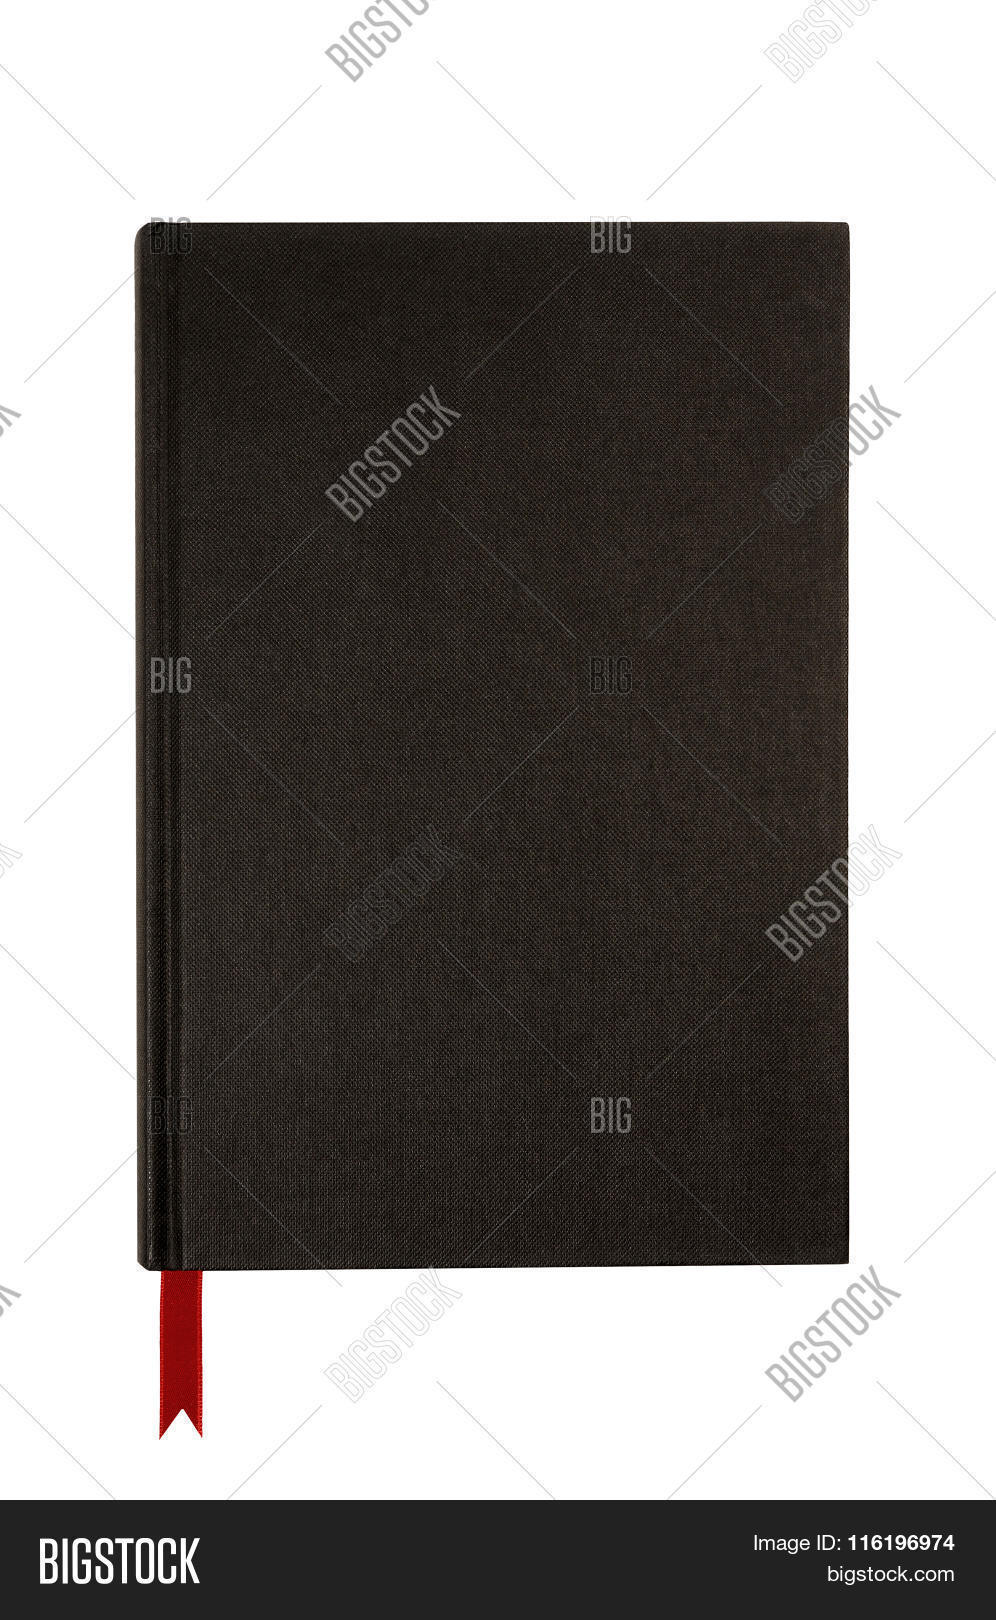 Plain Black Book Cover ~ Black plain hardcover book or bible front cover upright